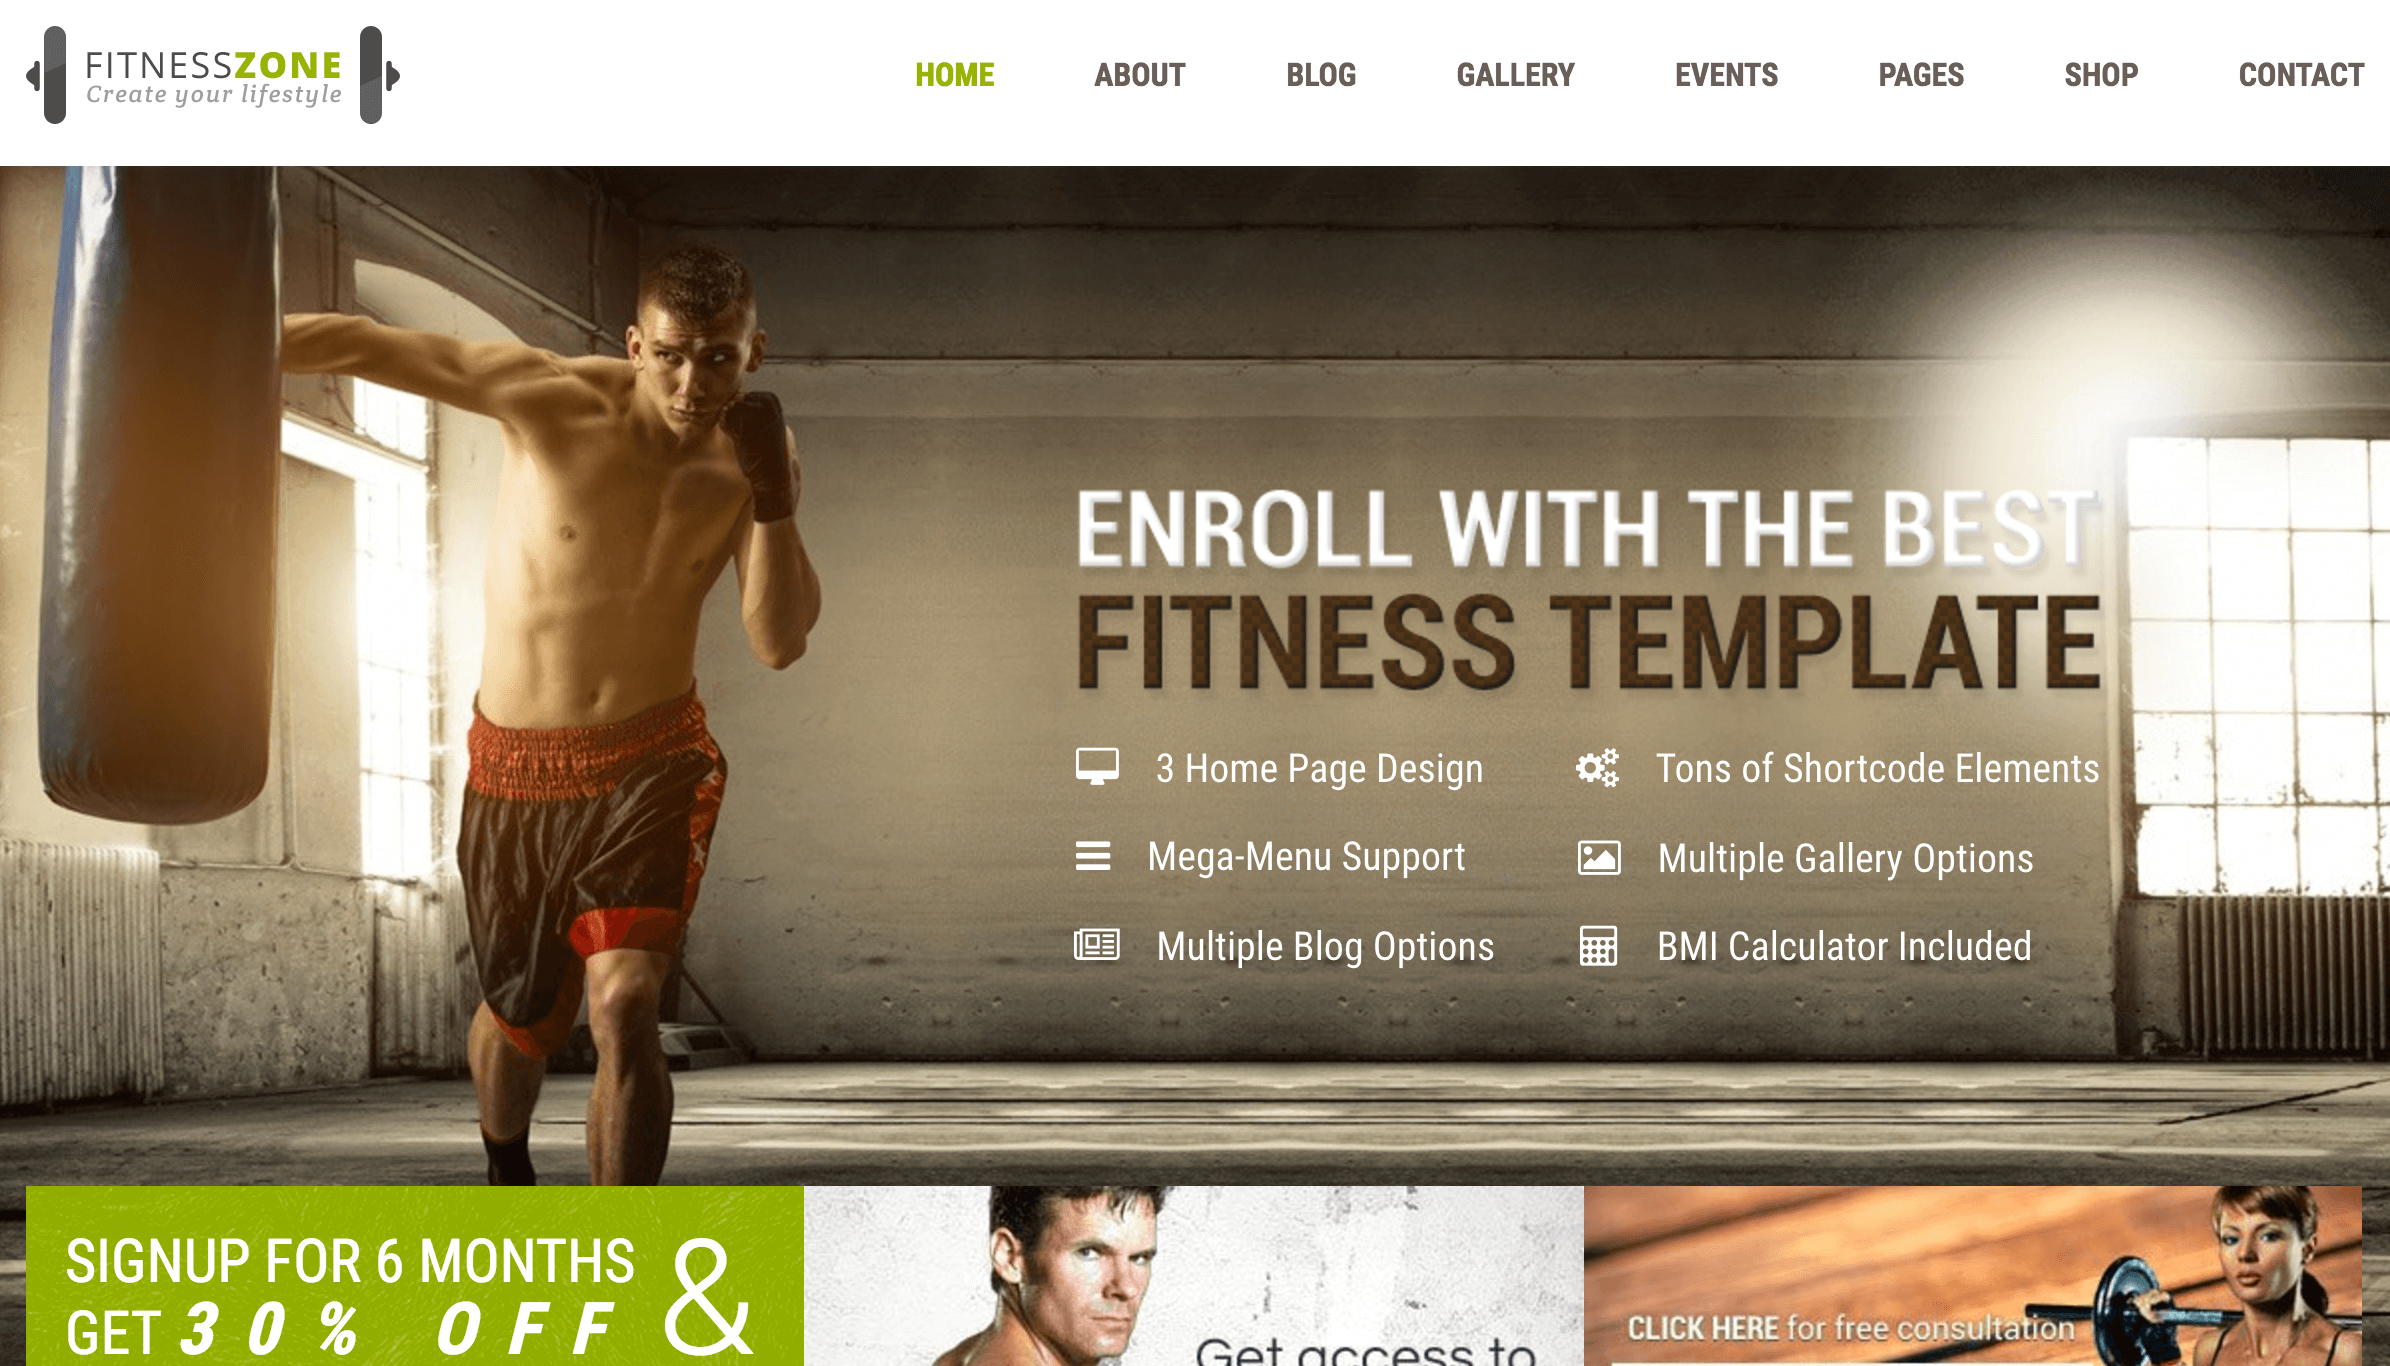 fitness-zone-wordpress-theme